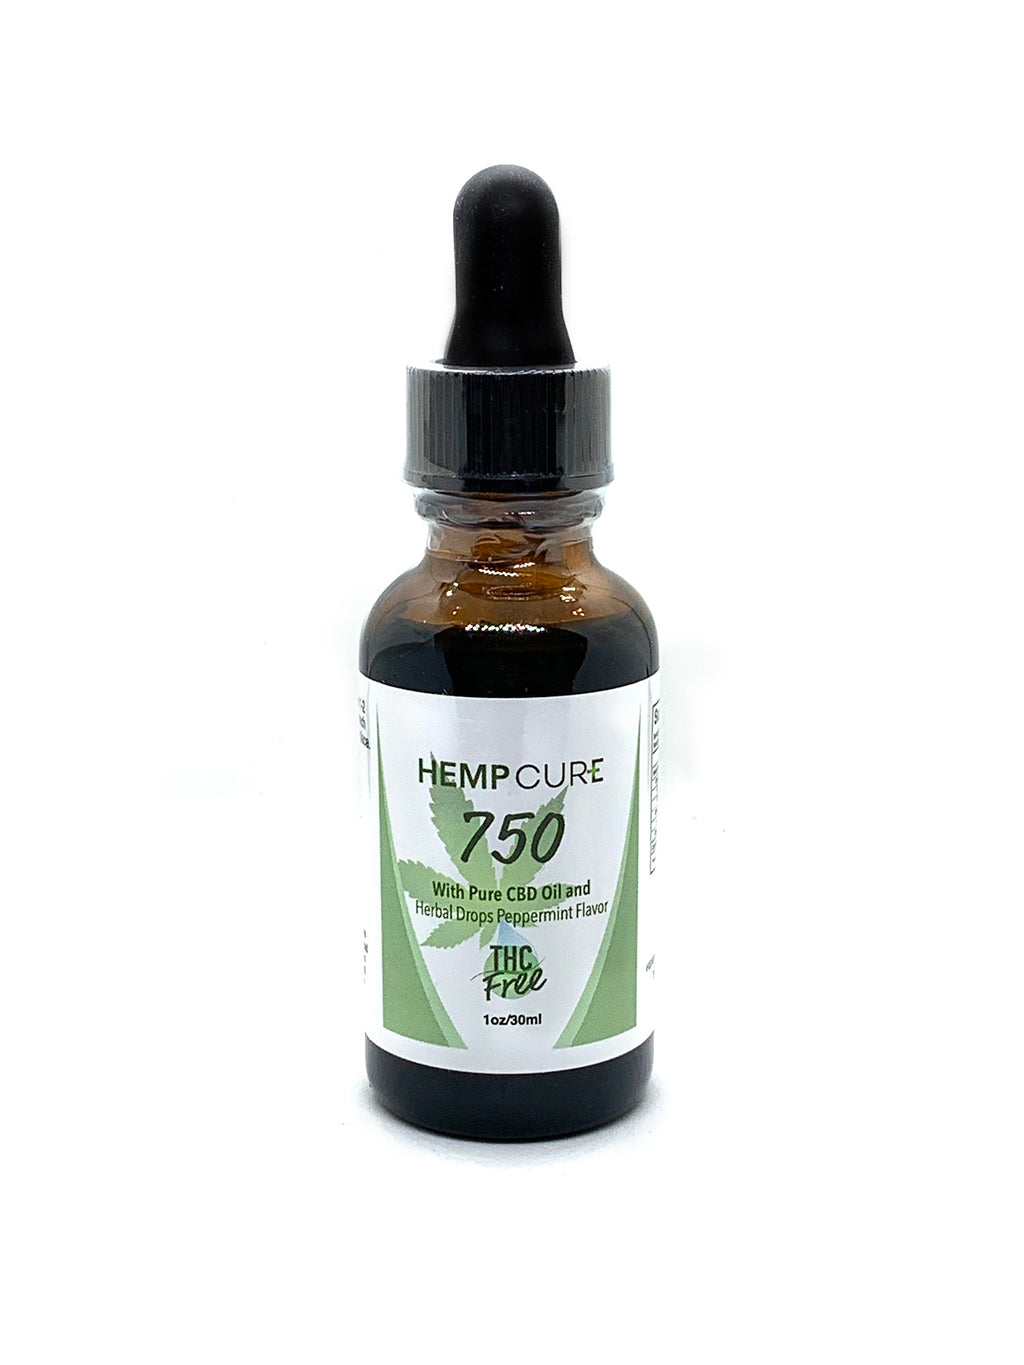 HempCure 750 Peppermint THC Free